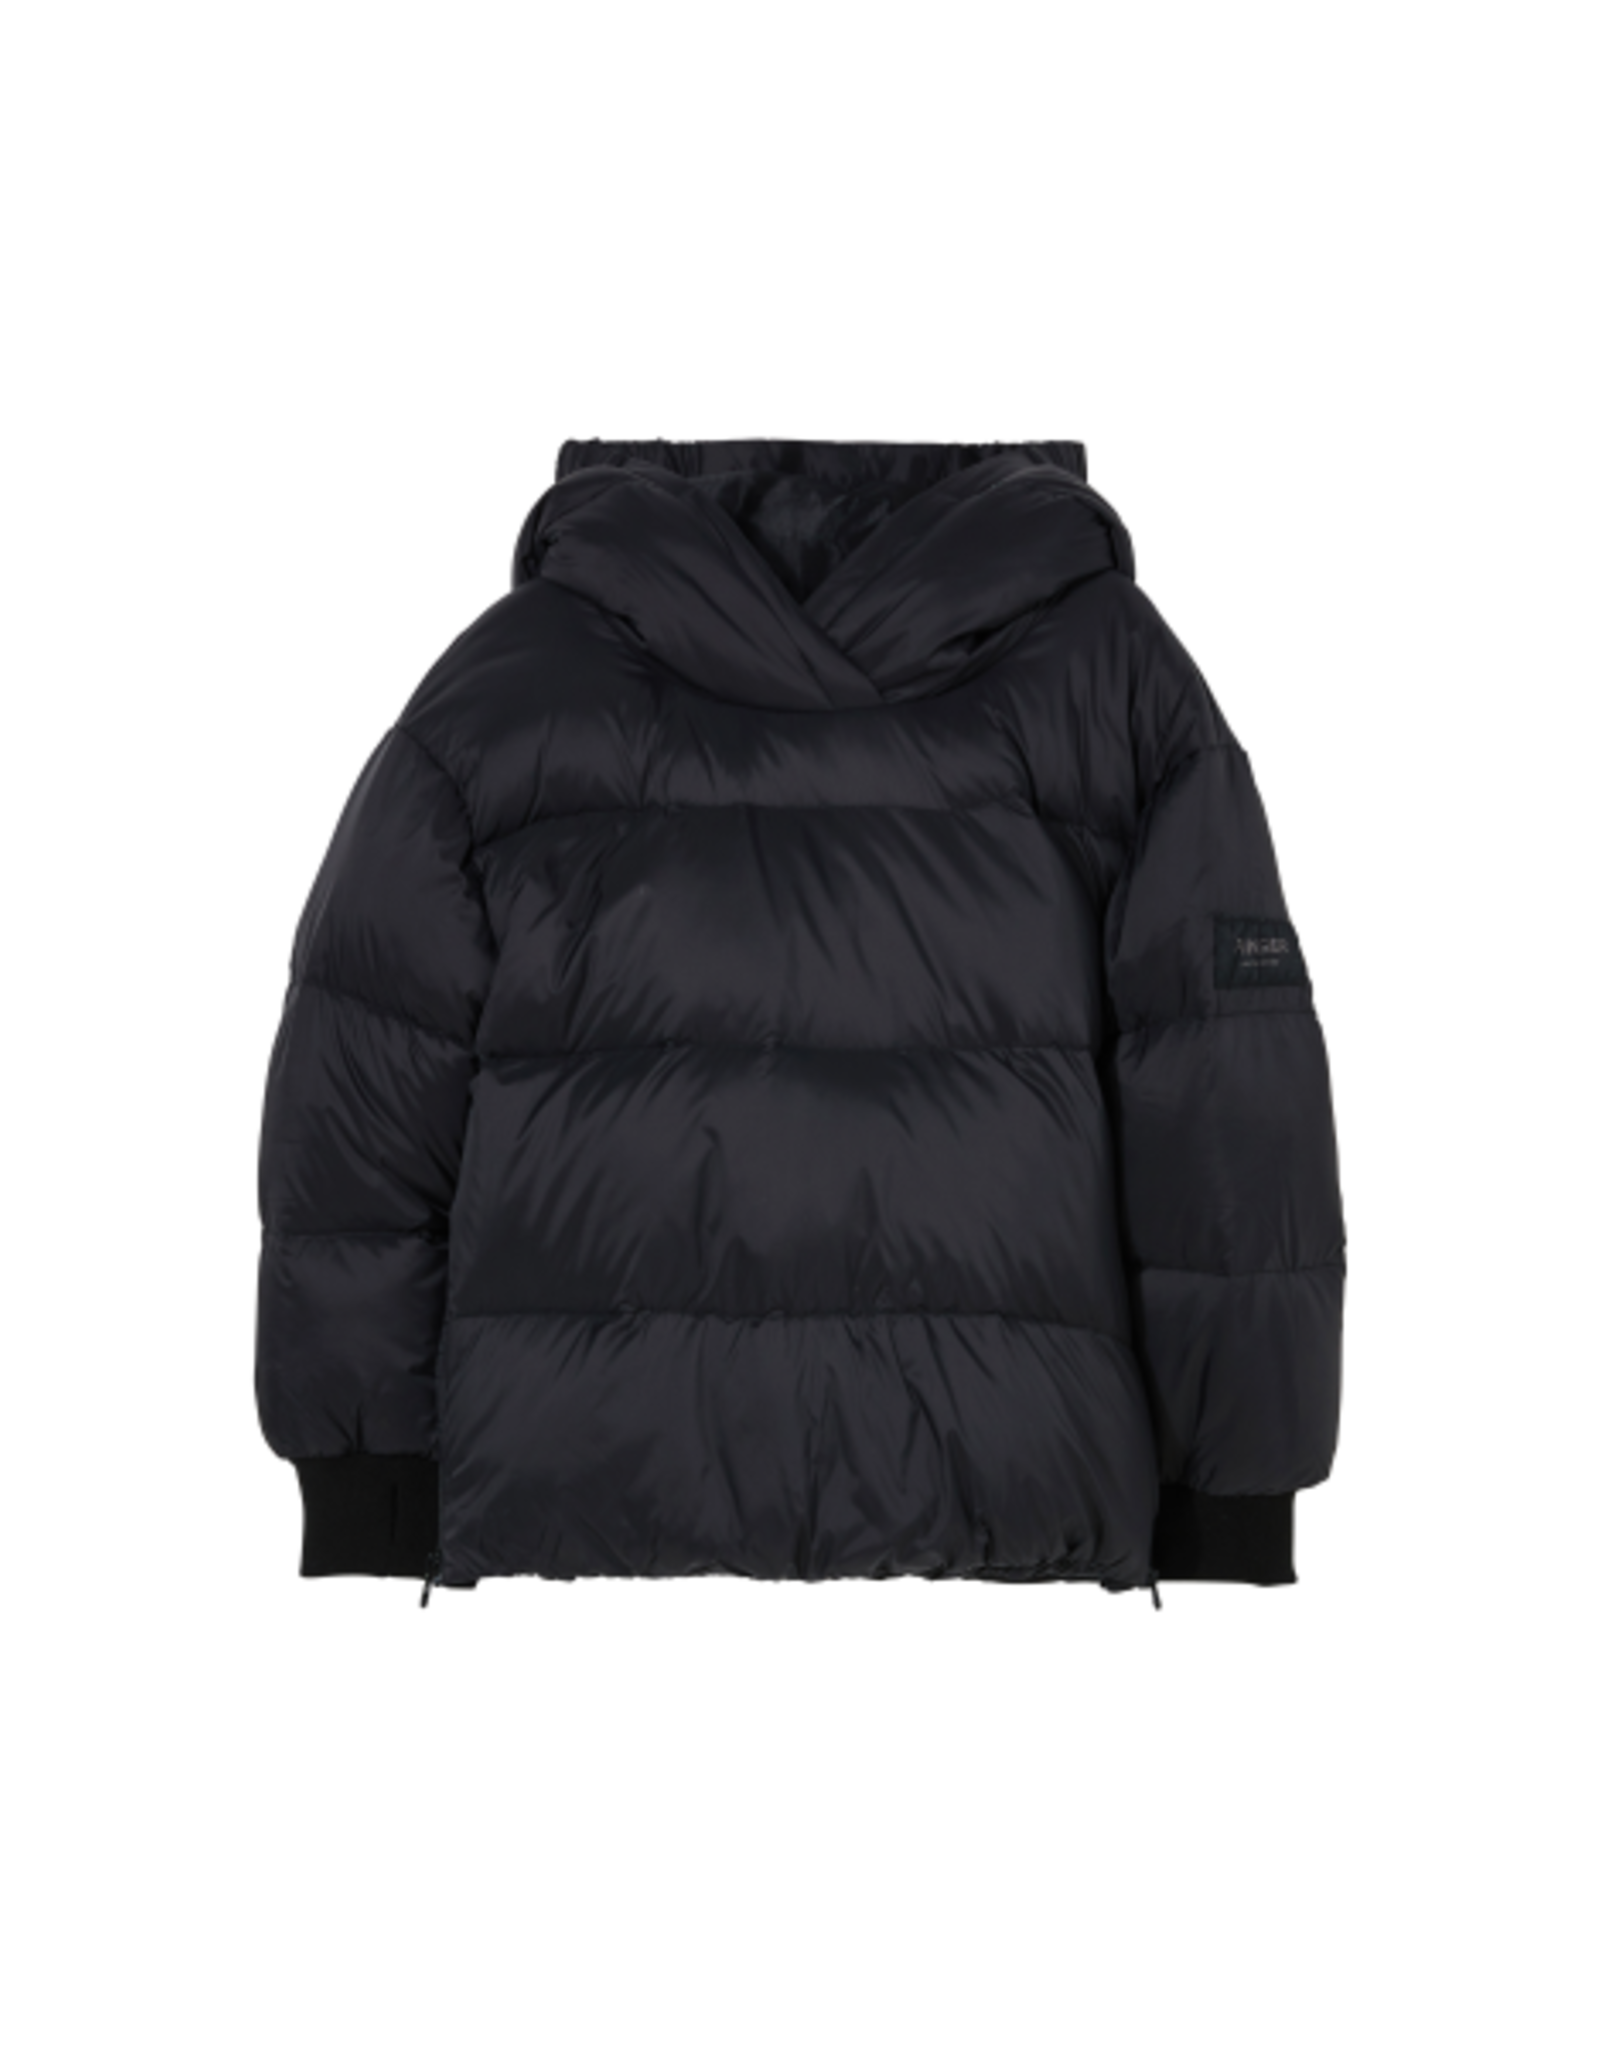 Finger in the Nose Finger in the Nose FW21 Snowsweet black jacket